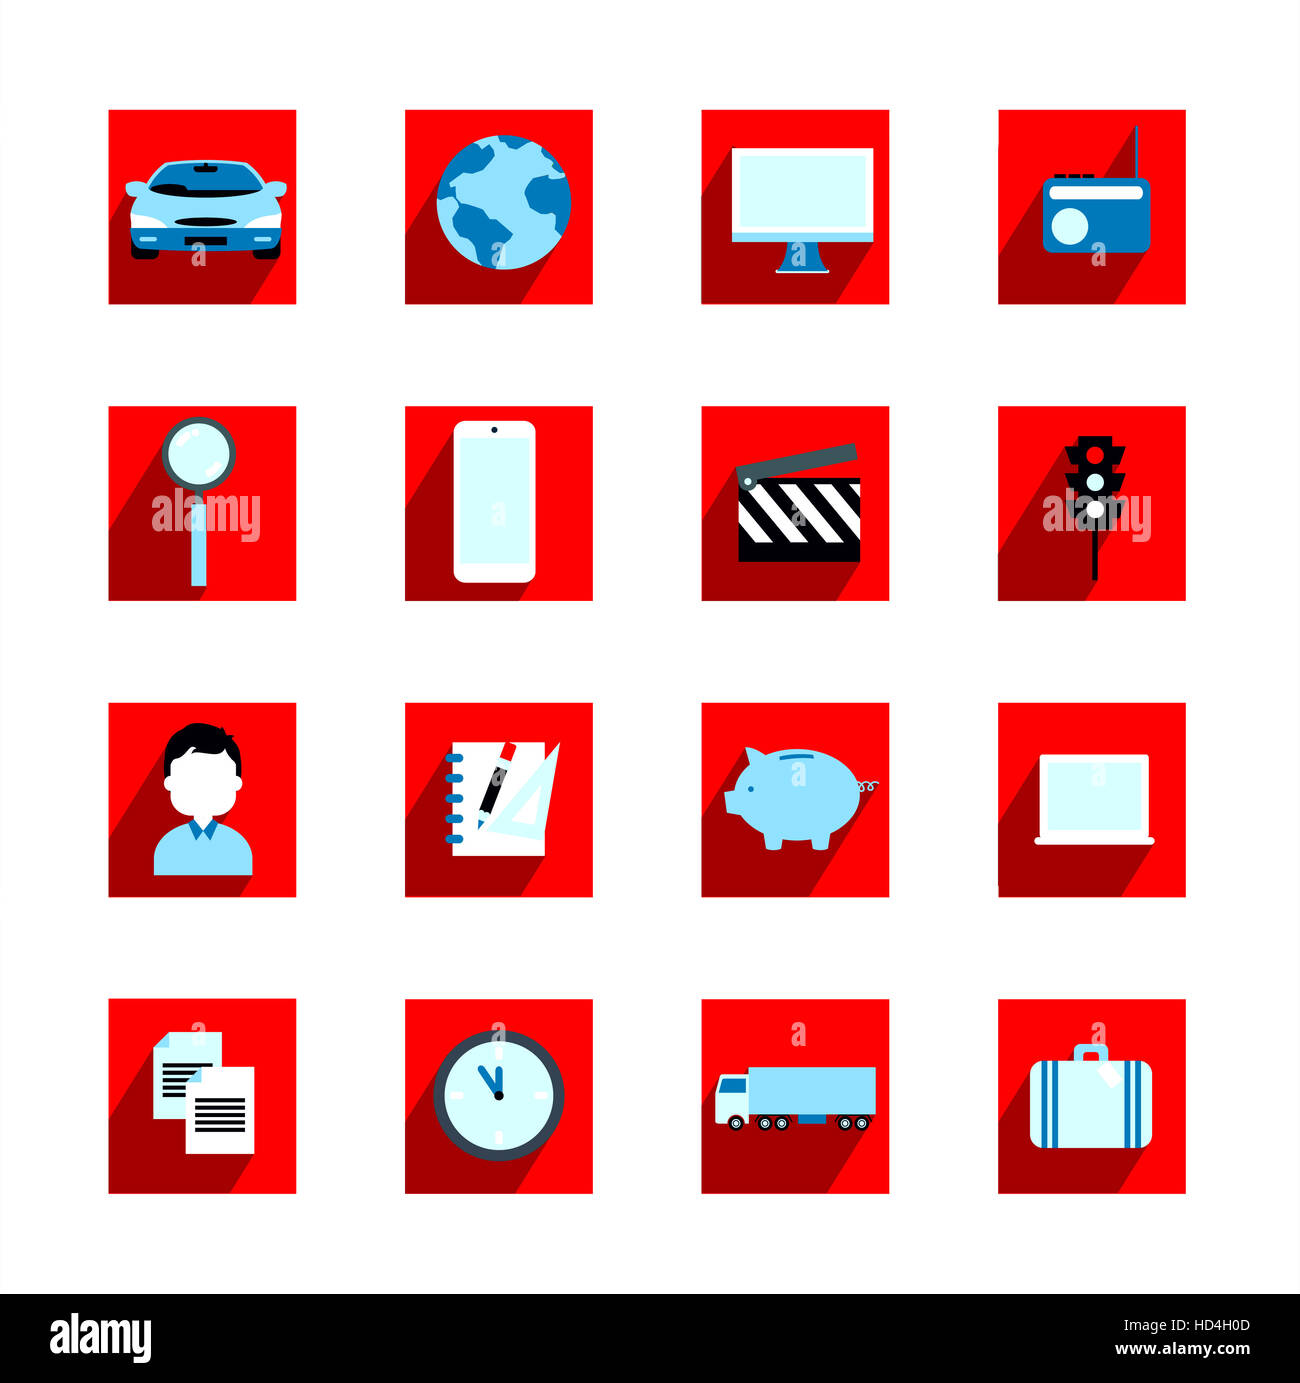 Icons representing various industries - Stock Image